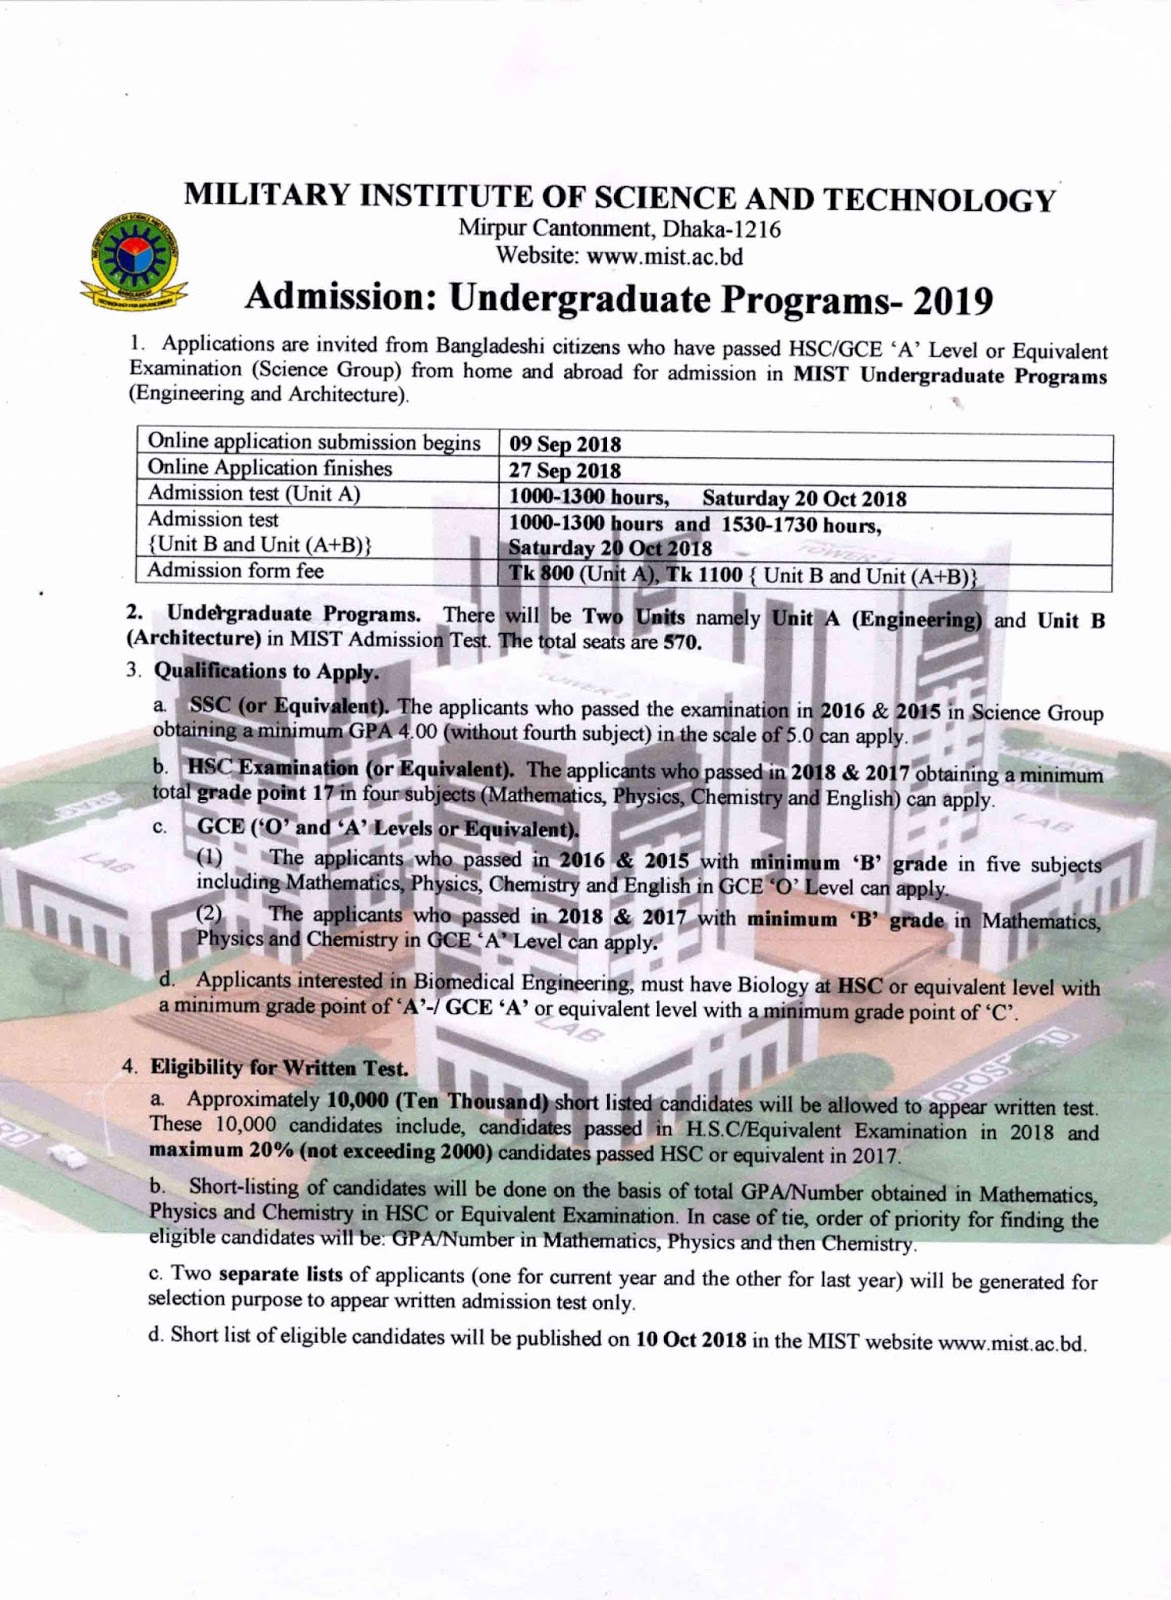 Military Institute of Science and Technology (MIST) Admission Circular 2019